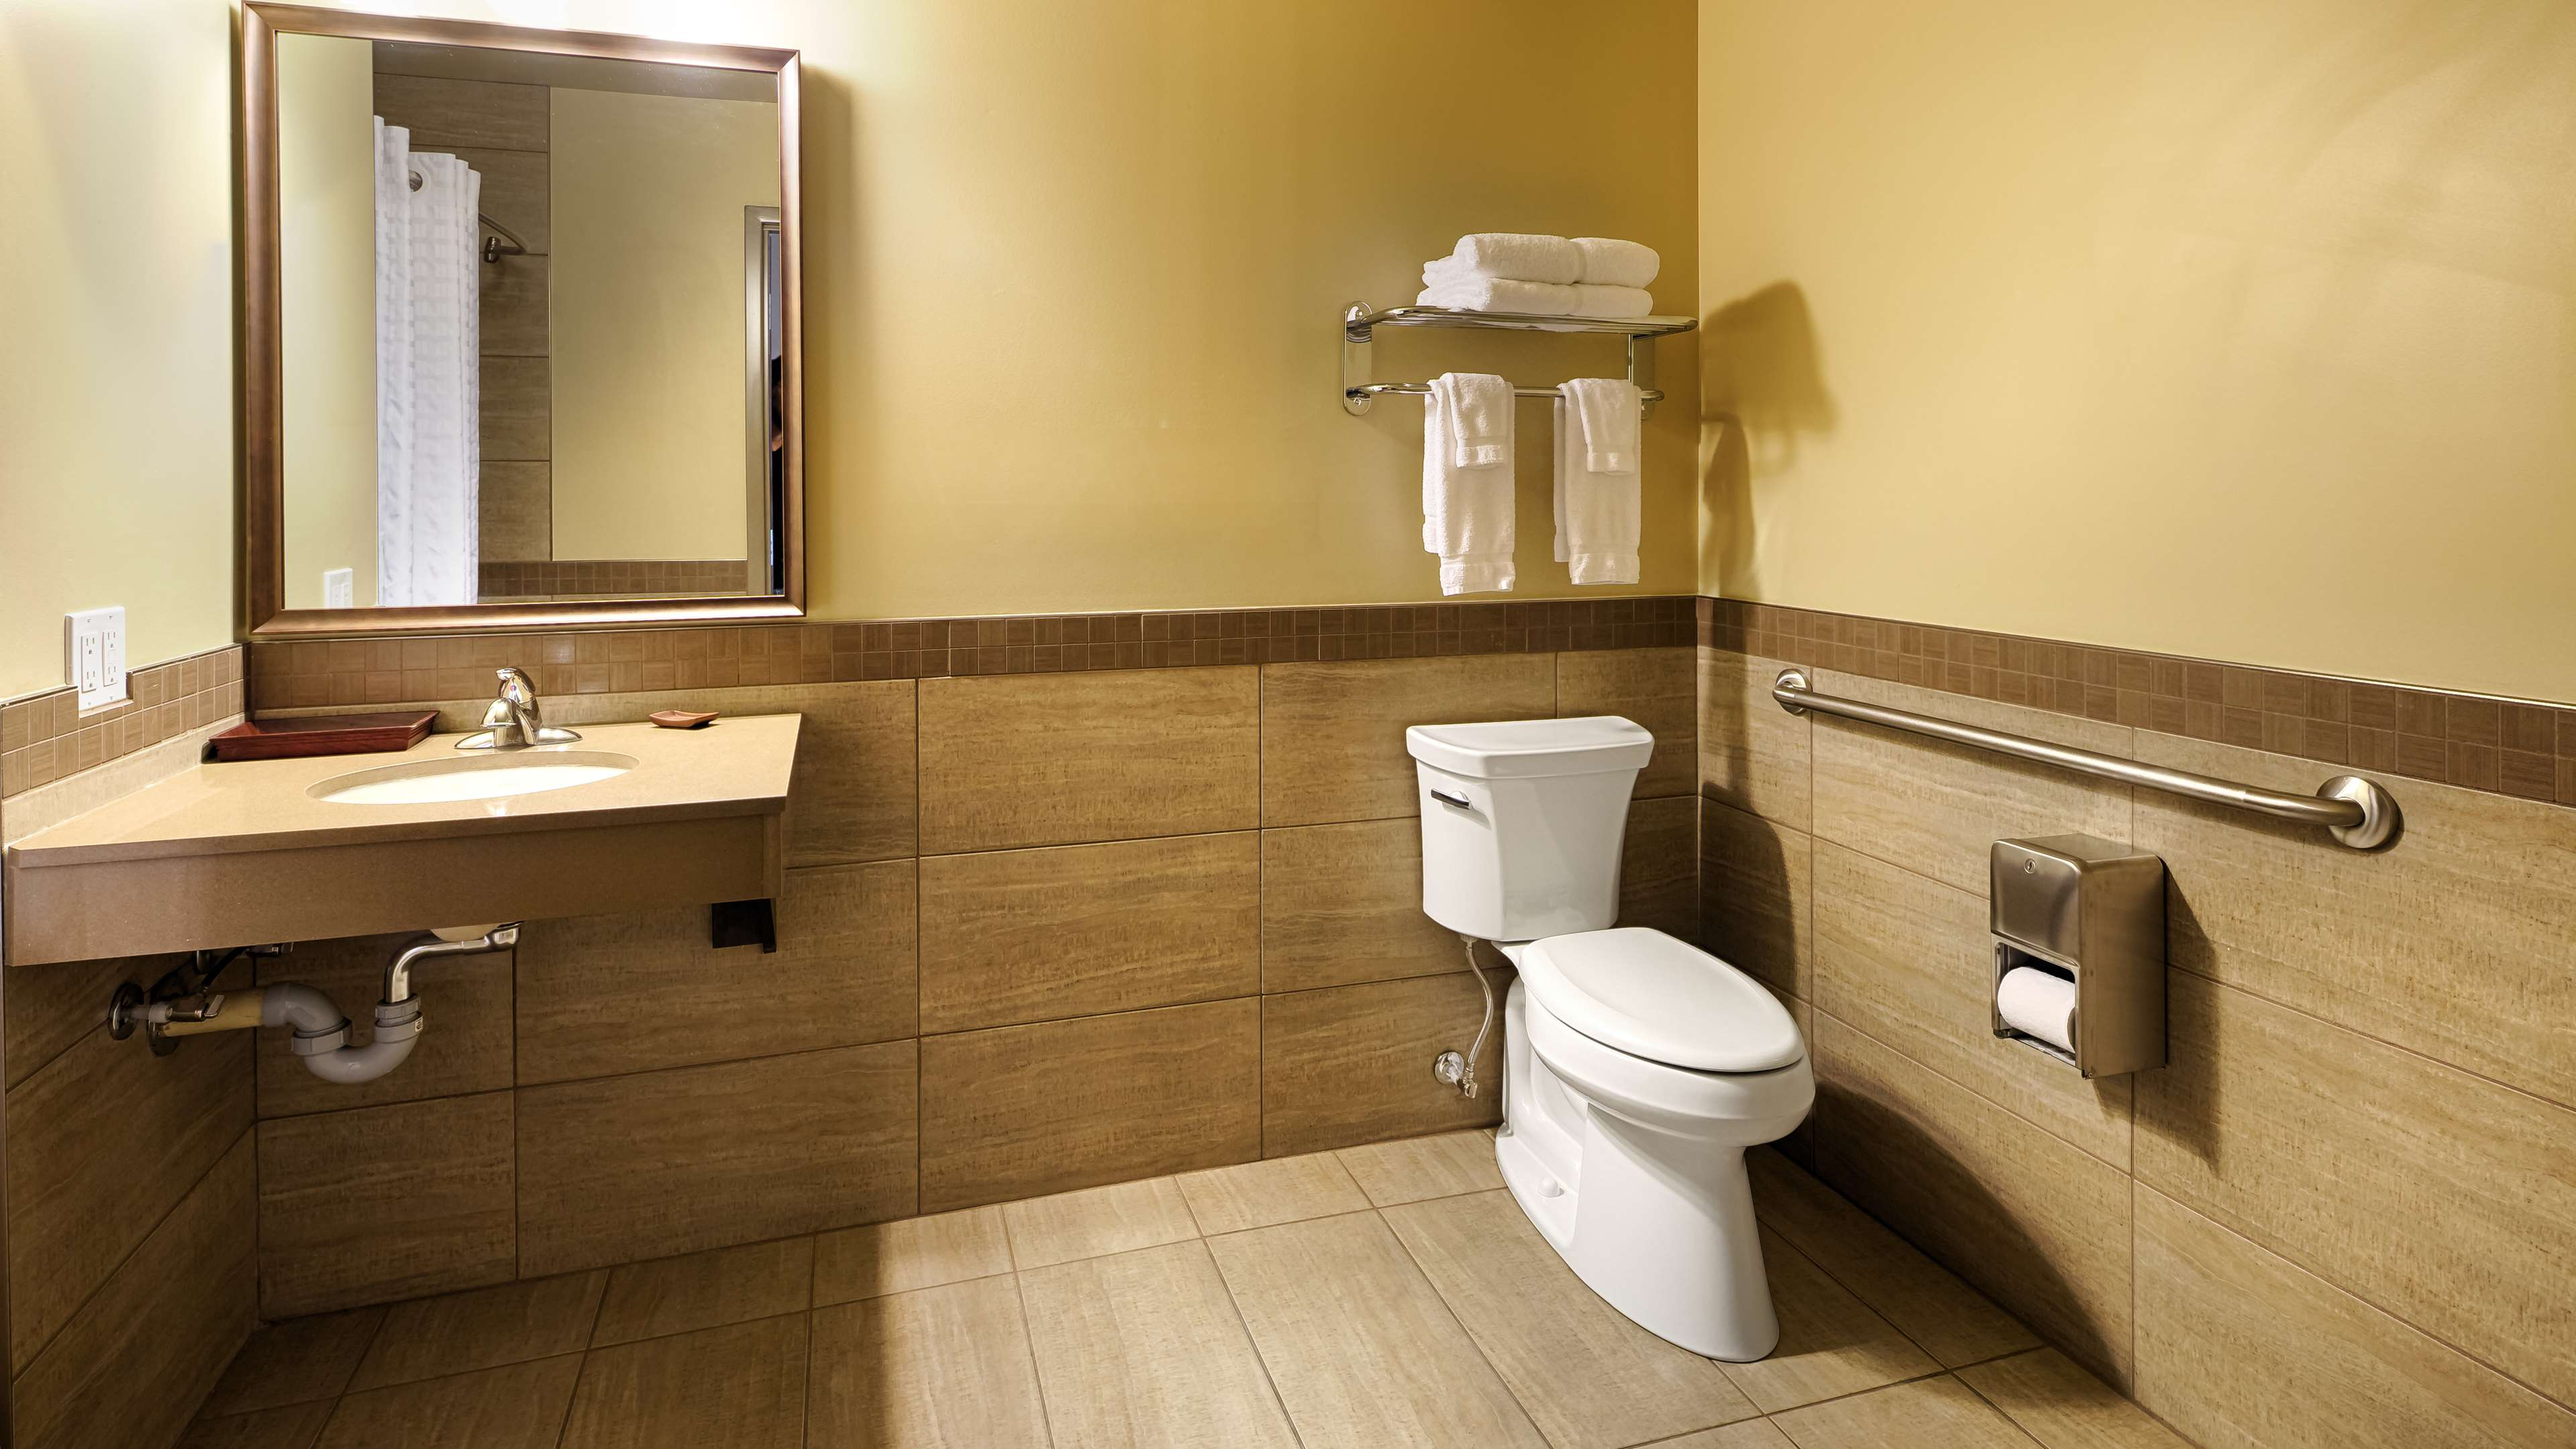 King Accessible Bathroom Best Western Plus Winnipeg West Headingley (204)594-2200